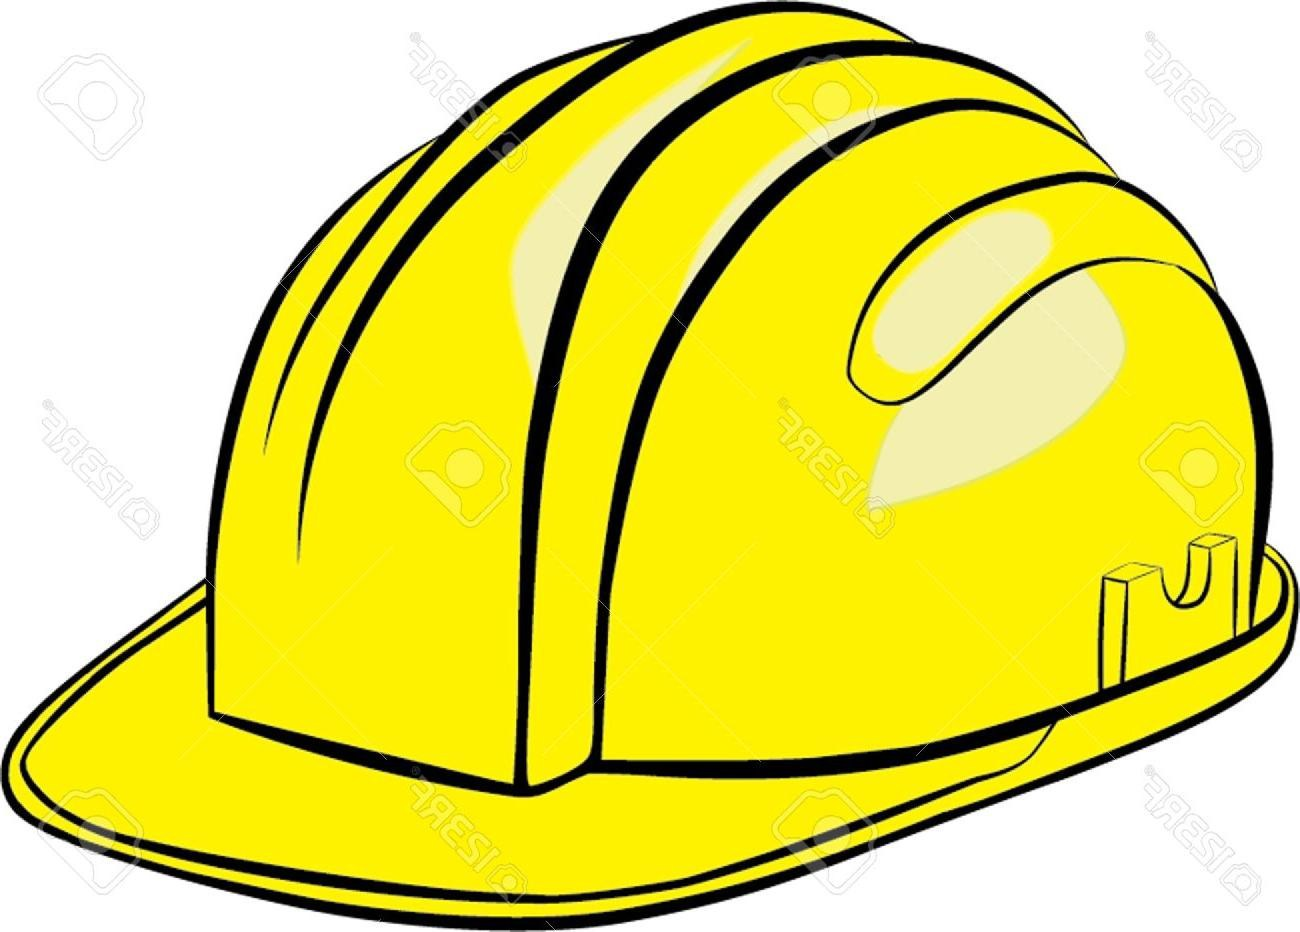 Download Free png Hard hat clipart Lovely Top Construction.